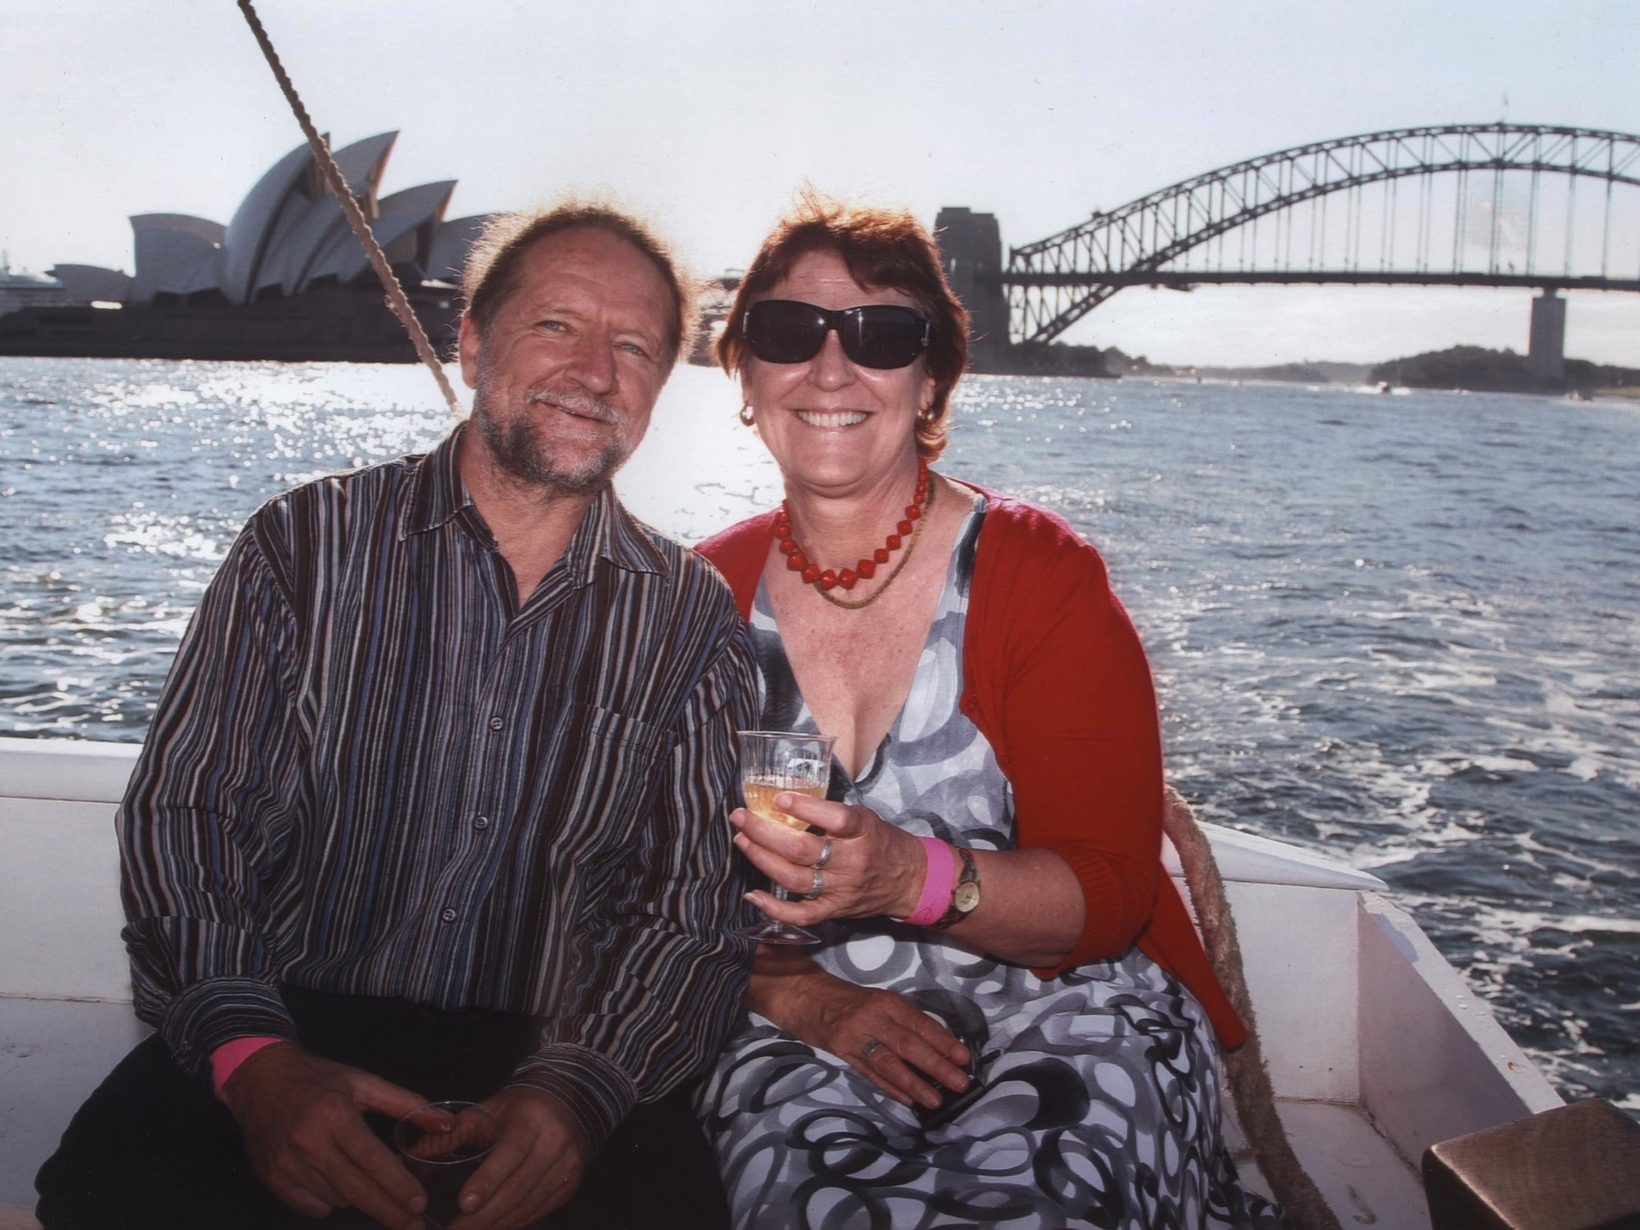 Ronnie & Diana from Newcastle, New South Wales, Australia